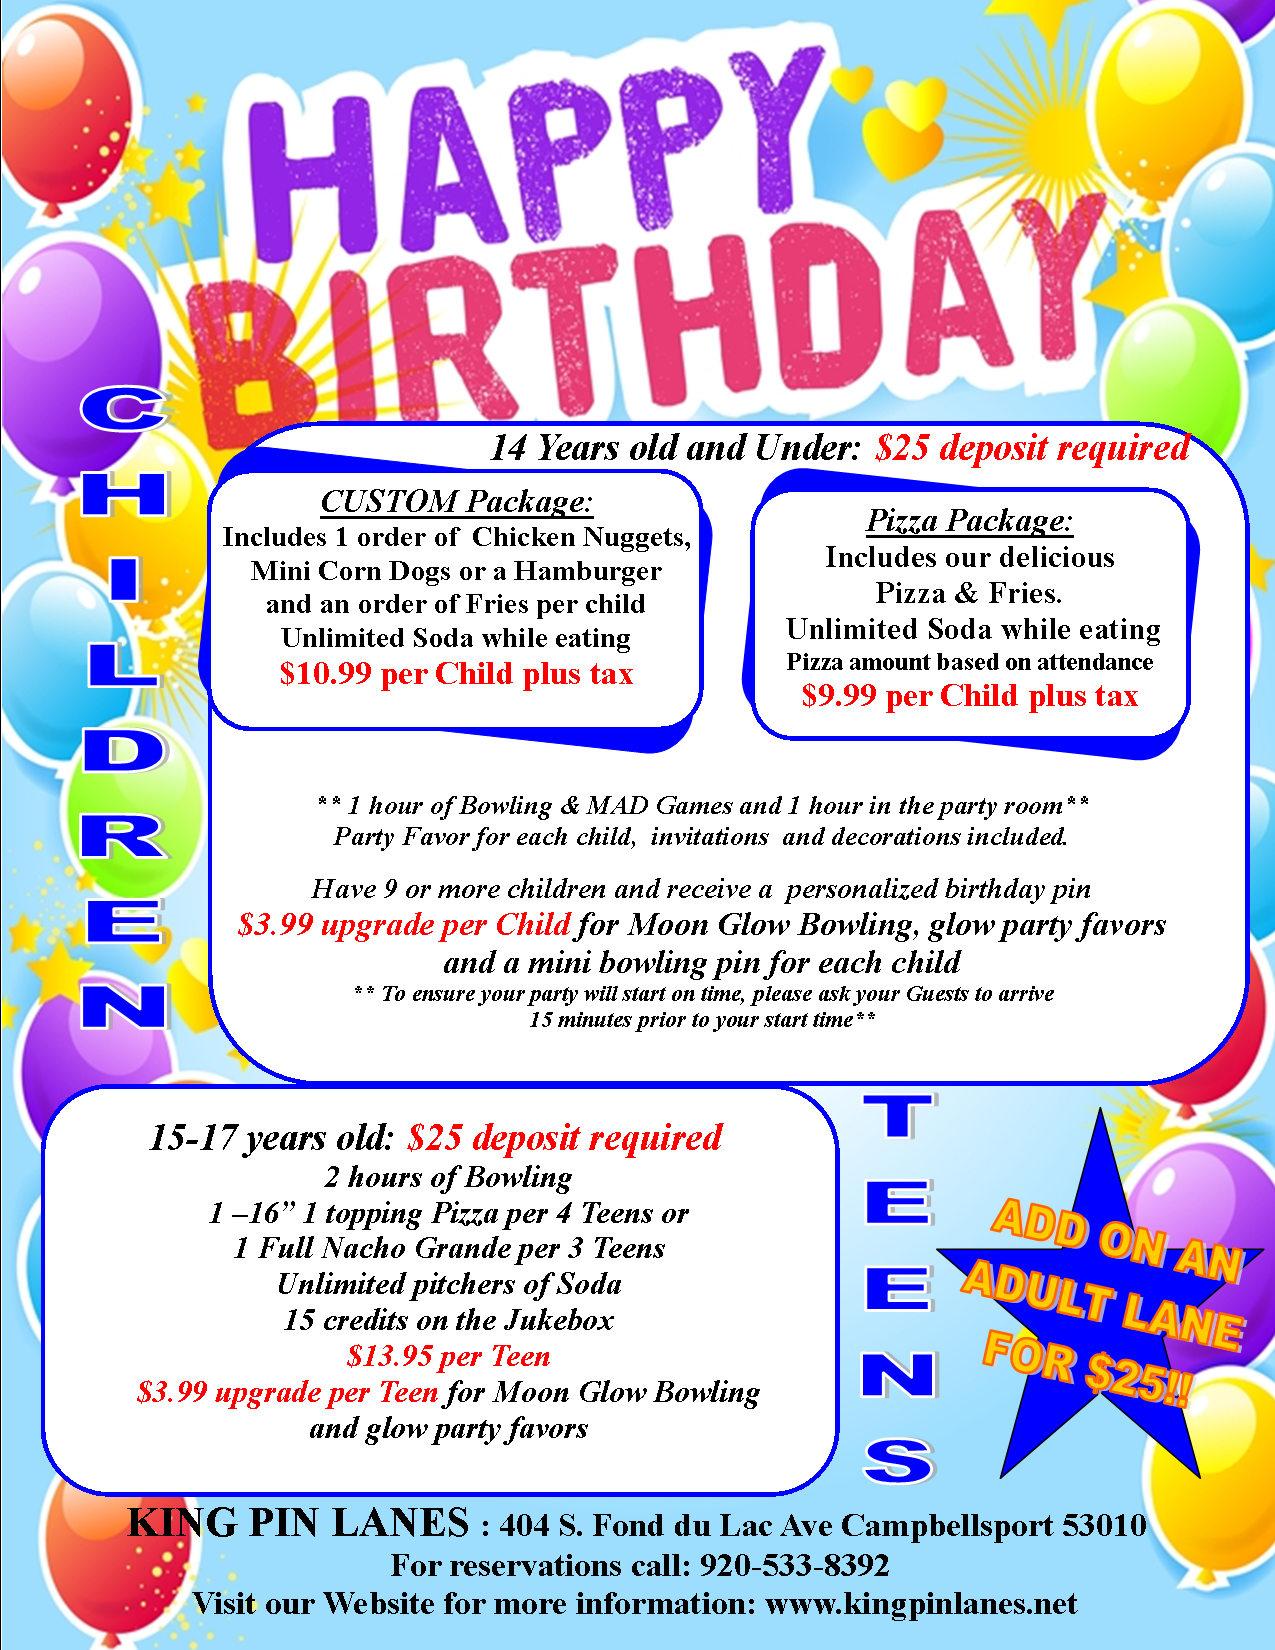 King Pin Lanes Parties At Birthday Party Info